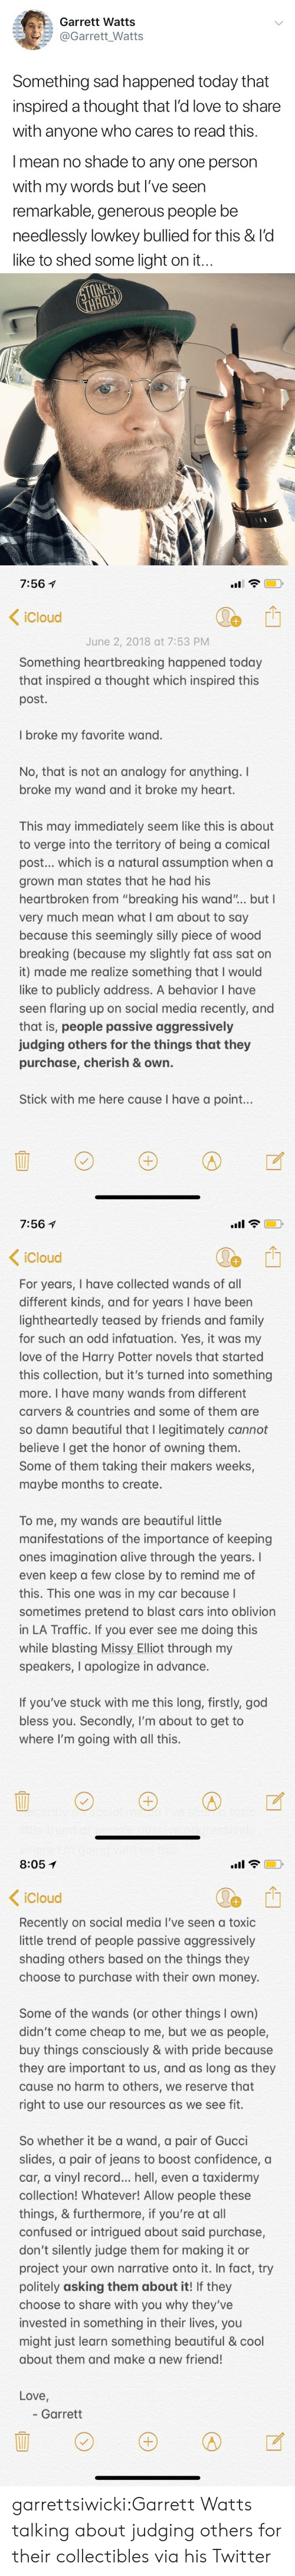 "firstly: E a : Garrett Watts  @Garrett_Watts  Something sad happened today that  inspired a thought that l'd love to share  with anyone who cares to read this.  I mean no shade to any one person  with my words but I've seen  remarkable, generous people be  needlessly lowkey bullied for this & l'd  like to shed some light on it.   7:561  < iCloud  June 2, 2018 at 7:53 PM  Something heartbreaking happened today  that inspired a thought which inspired this  post.  I broke my favorite wand.  No, that is not an analogy for anything. I  broke my wand and it broke my heart.  This may immediately seem like this is about  to verge into the territory of being a comical  post... which is a natural assumption when a  grown man states that he had his  heartbroken from ""breaking his wand""... but I  very much mean what I am about to say  because this seemingly silly piece of wood  breaking (because my slightly fat ass sat on  it) made me realize something that I would  like to publicly address. A behavior I have  seen flaring up on social media recently, and  that is, people passive aggressively  judging others for the things that they  purchase, cherish & own.  Stick with me here cause I have a point...   7:56 1  .uil  Cloud  For years, I have collected wands of all  different kinds, and for years I have been  lightheartedly teased by friends and family  for such an odd infatuation. Yes, it was my  love of the Harry Potter novels that started  this collection, but it's turned into something  more. I have many wands from different  carvers & countries and some of them are  so damn beautiful that I legitimately cannot  believe I get the honor of owning themm  Some of them taking their makers weeks,  maybe months to create.  tH  To me, my wands are beautiful little  manifestations of the importance of keeping  ones imagination alive through the years. I  even keep a few close by to remind me of  this. This one was in my car because l  sometimes pretend to blast cars into oblivion  in LA Traffic. If you ever see me doing this  while blasting Missy Elliot through my  speakers, I apologize in advance.  If you've stuck with me this long, firstly, god  bless you. Secondly, I'm about to get to  where I'm going with all this   8:051  .ail  iCloud  Recently on social media I've seen a toxic  little trend of people passive aggressively  shading others based on the things they  choose to purchase with their own money.  Some of the wands (or other things I own)  didn't come cheap to me, but we as people,  buy things consciously & with pride bec  they are important to us, and as long as they  cause no harm to others, we reserve that  right to use our resources as we see fit.  ause  So whether it be a wand, a pair of Gucci  slides, a pair of jeans to boost confidence, a  car, a vinyl record... hell, even a taxidermy  collection! Whatever! Allow people these  things, & furthermore, if you're at all  confused or intrigued about said purchase,  don't silently judge them for making it or  project your own narrative onto it. In fact, try  politely asking them about it! If they  choose to share with you why they've  invested in something in their lives, you  might just learn something beautiful & cool  about them and make a new friend!  Love  - Garrett garrettsiwicki:Garrett Watts talking about judging others for their collectibles via his Twitter"